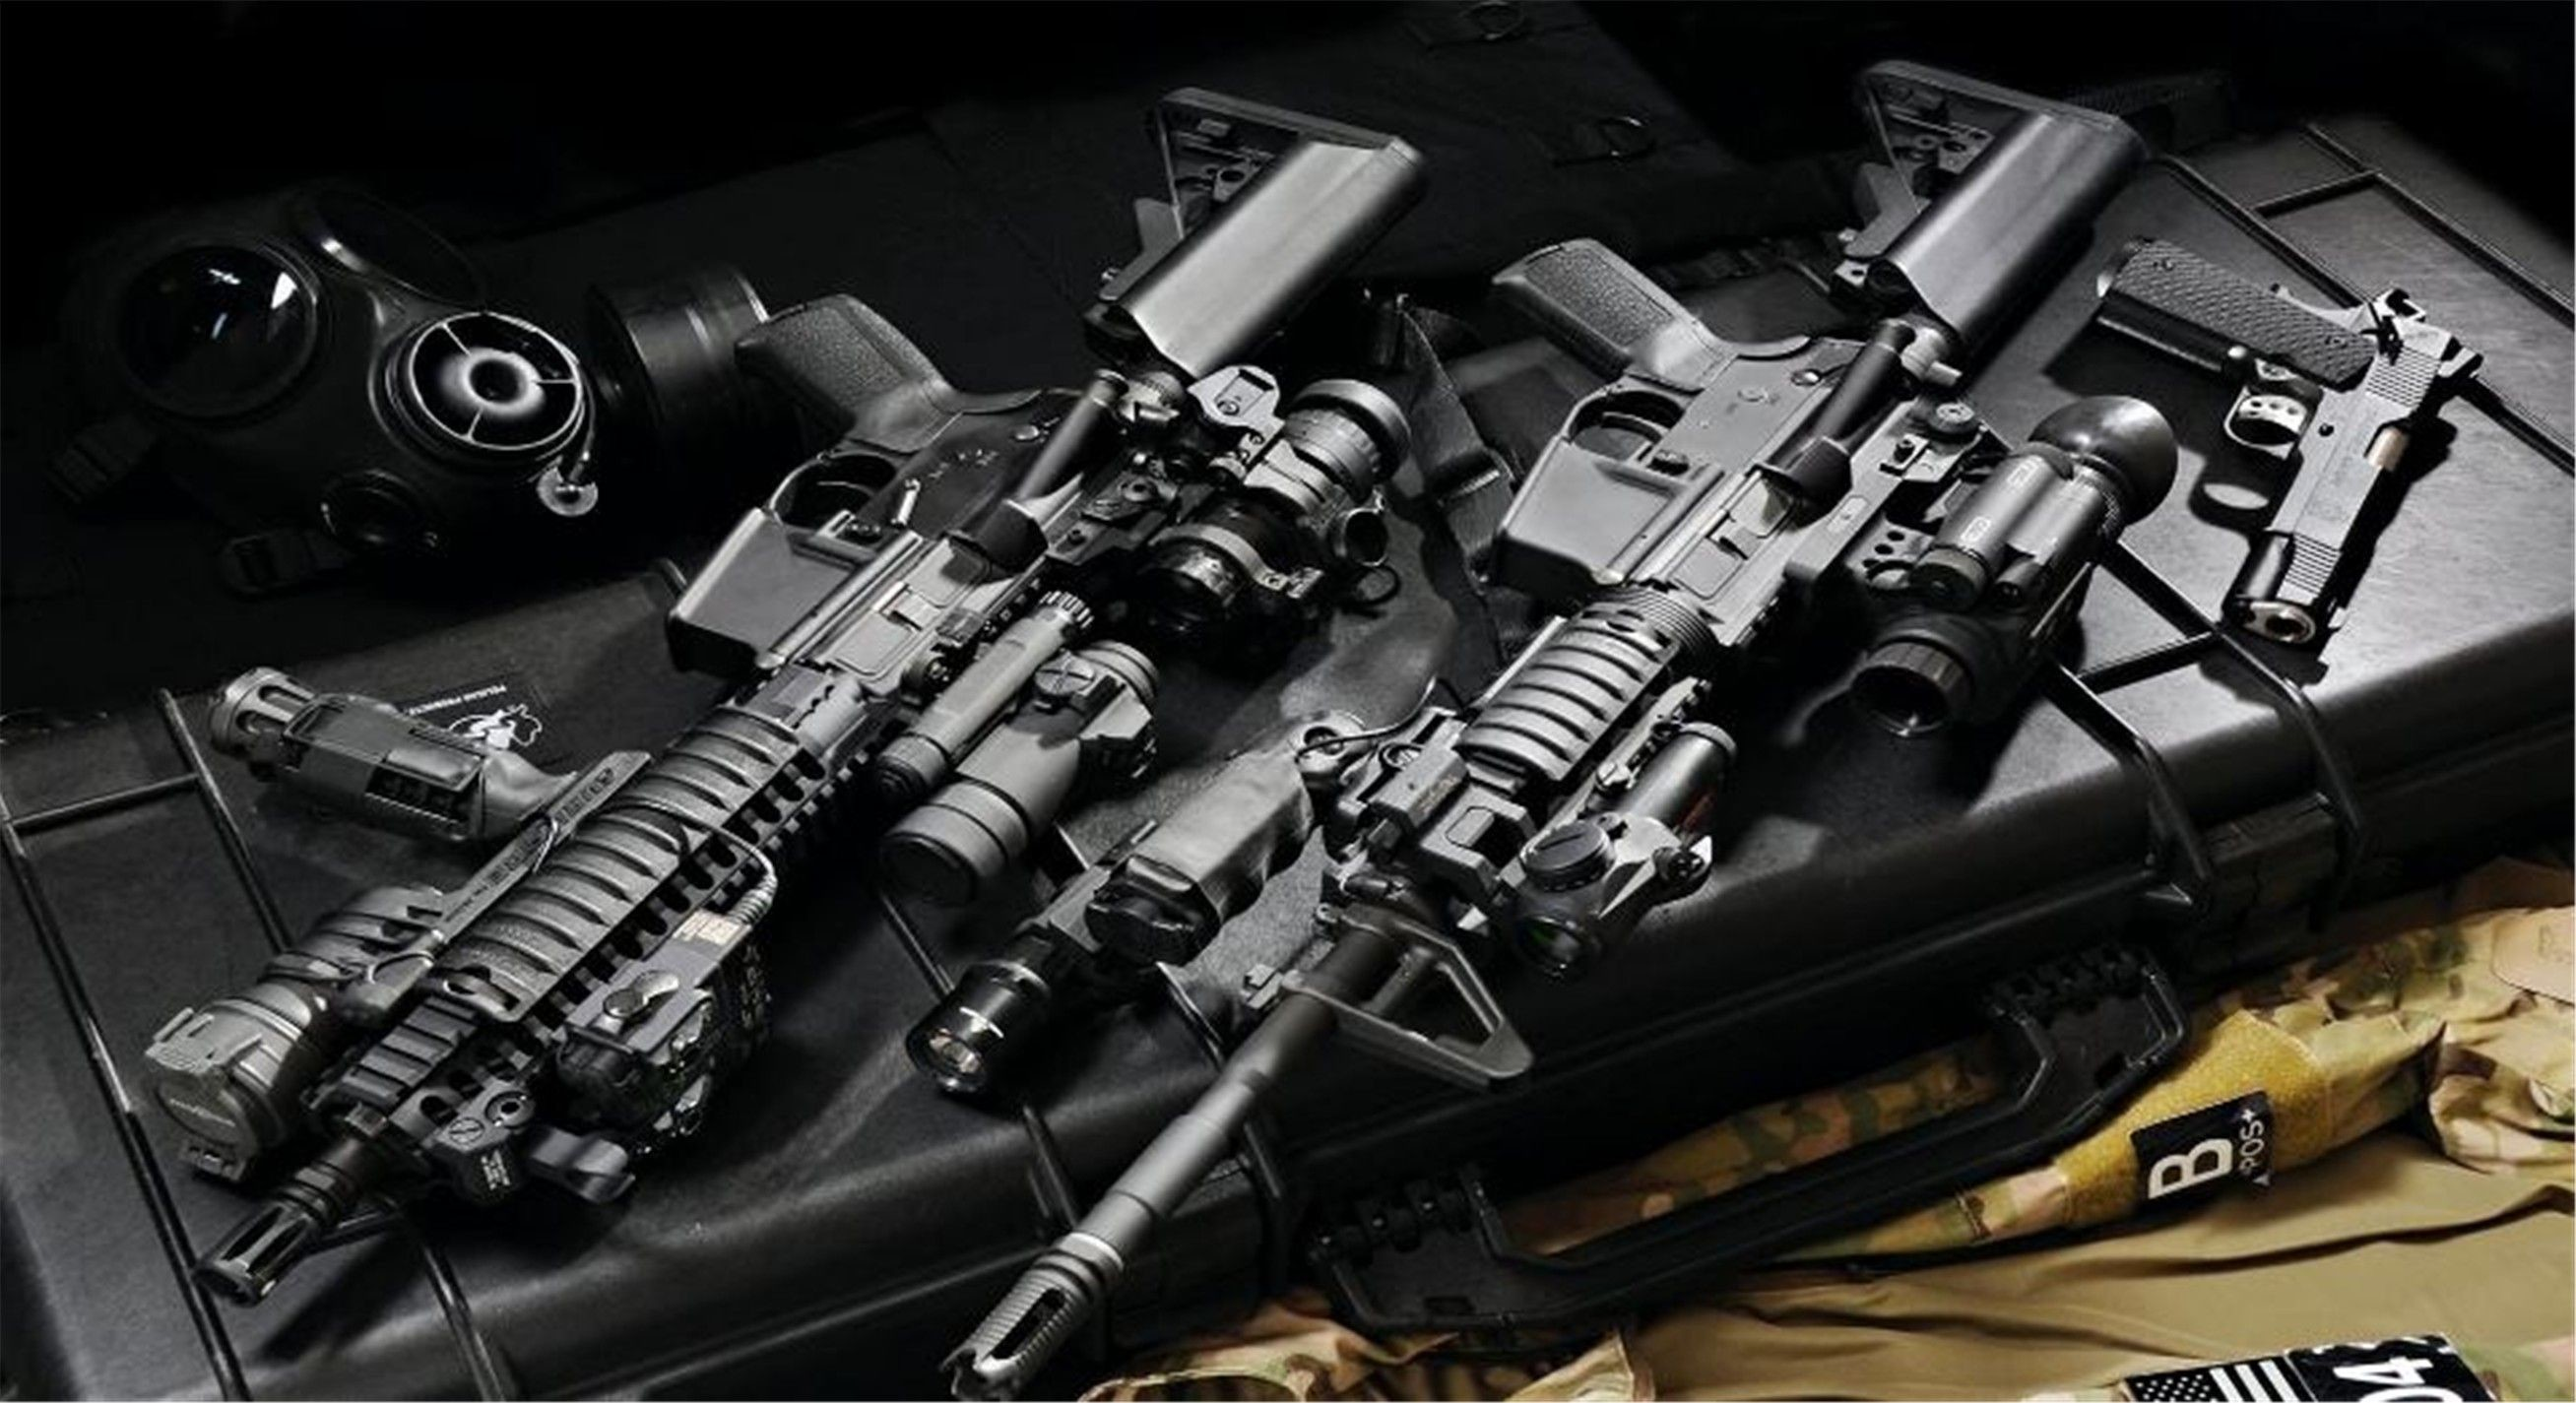 Res: 2616x1425, Guns Wallpaper Full HDQ Guns Pictures and Wallpapers Showcase